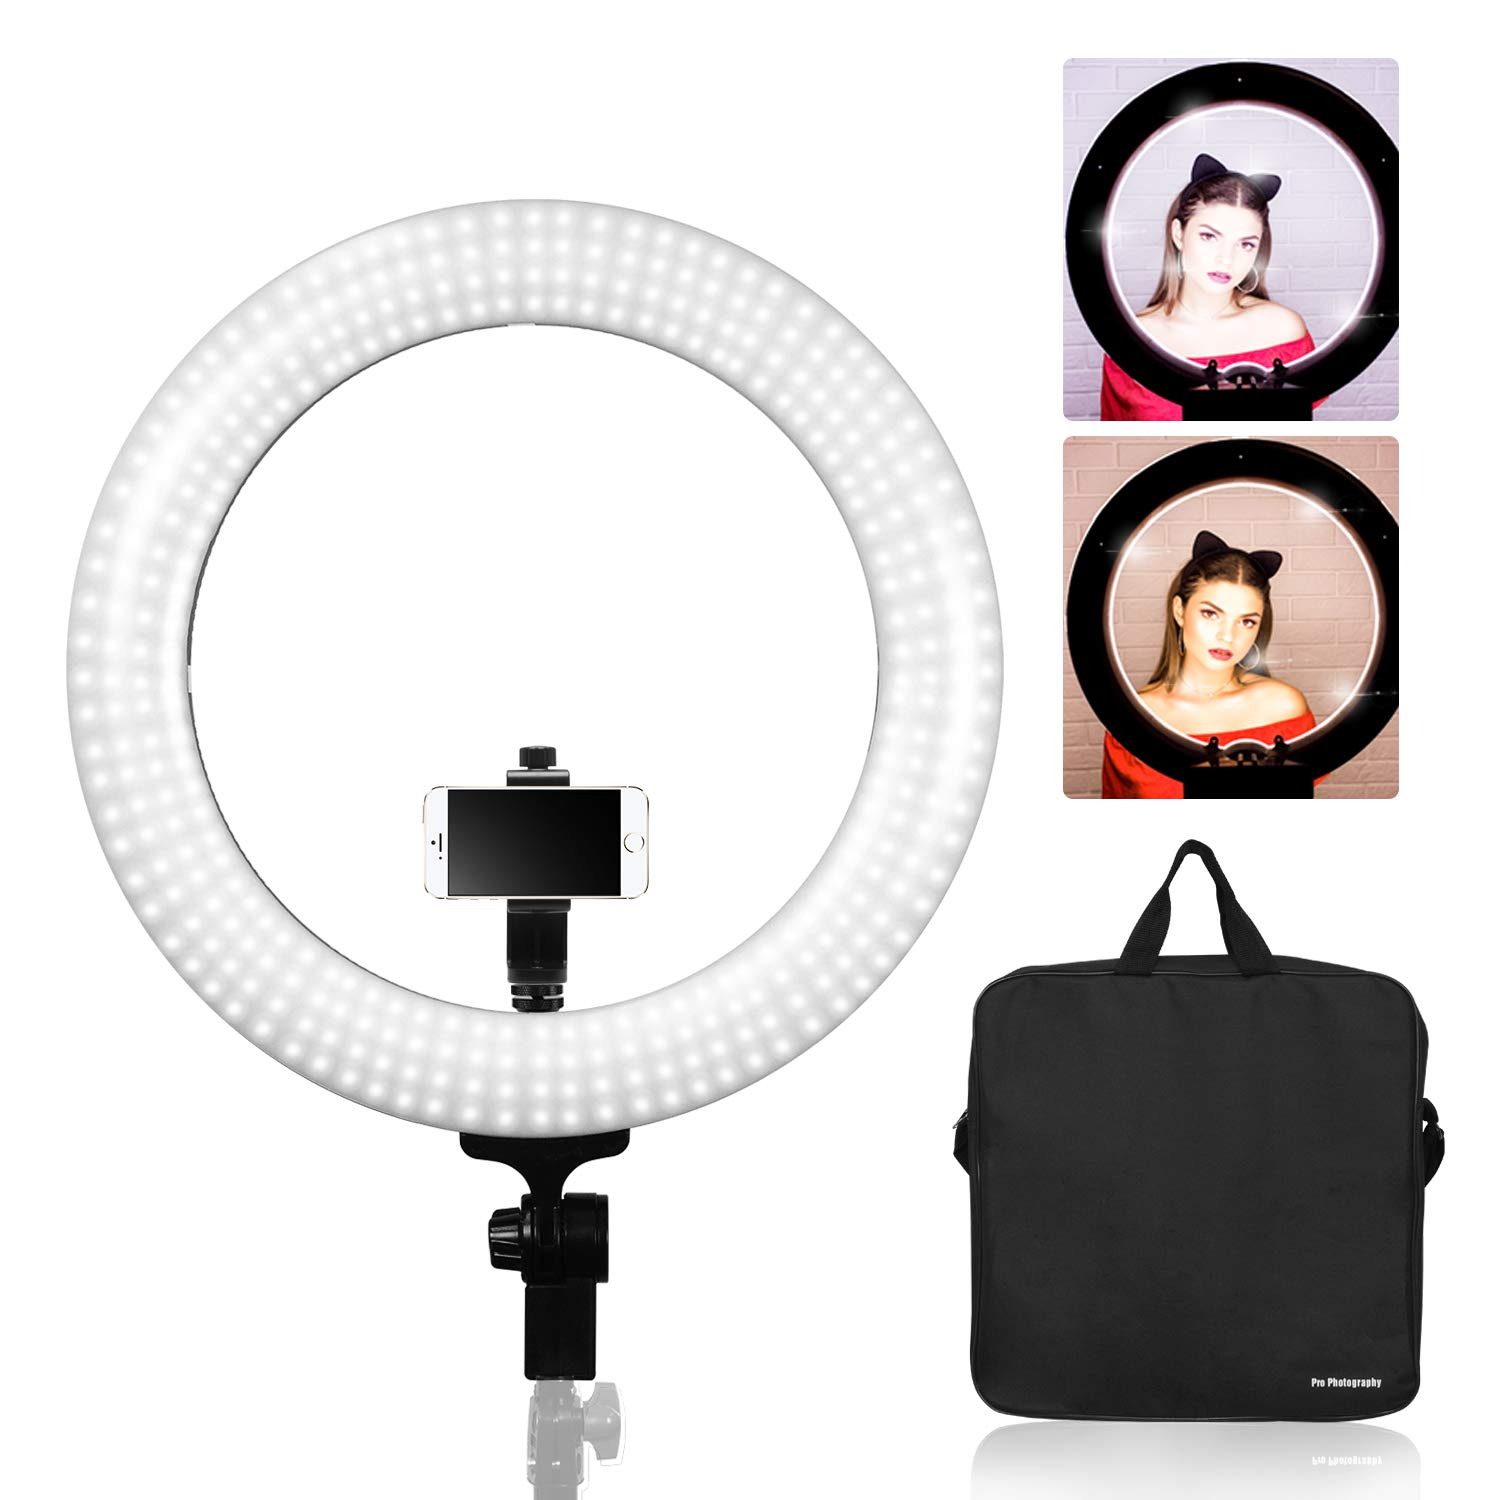 Limo Studio 18 inch Dimmable Ring Light with Cellphone Tripod Adapter, LED Dual Color Continuous Lighting for Beauty Facial Shoot, AGG2848